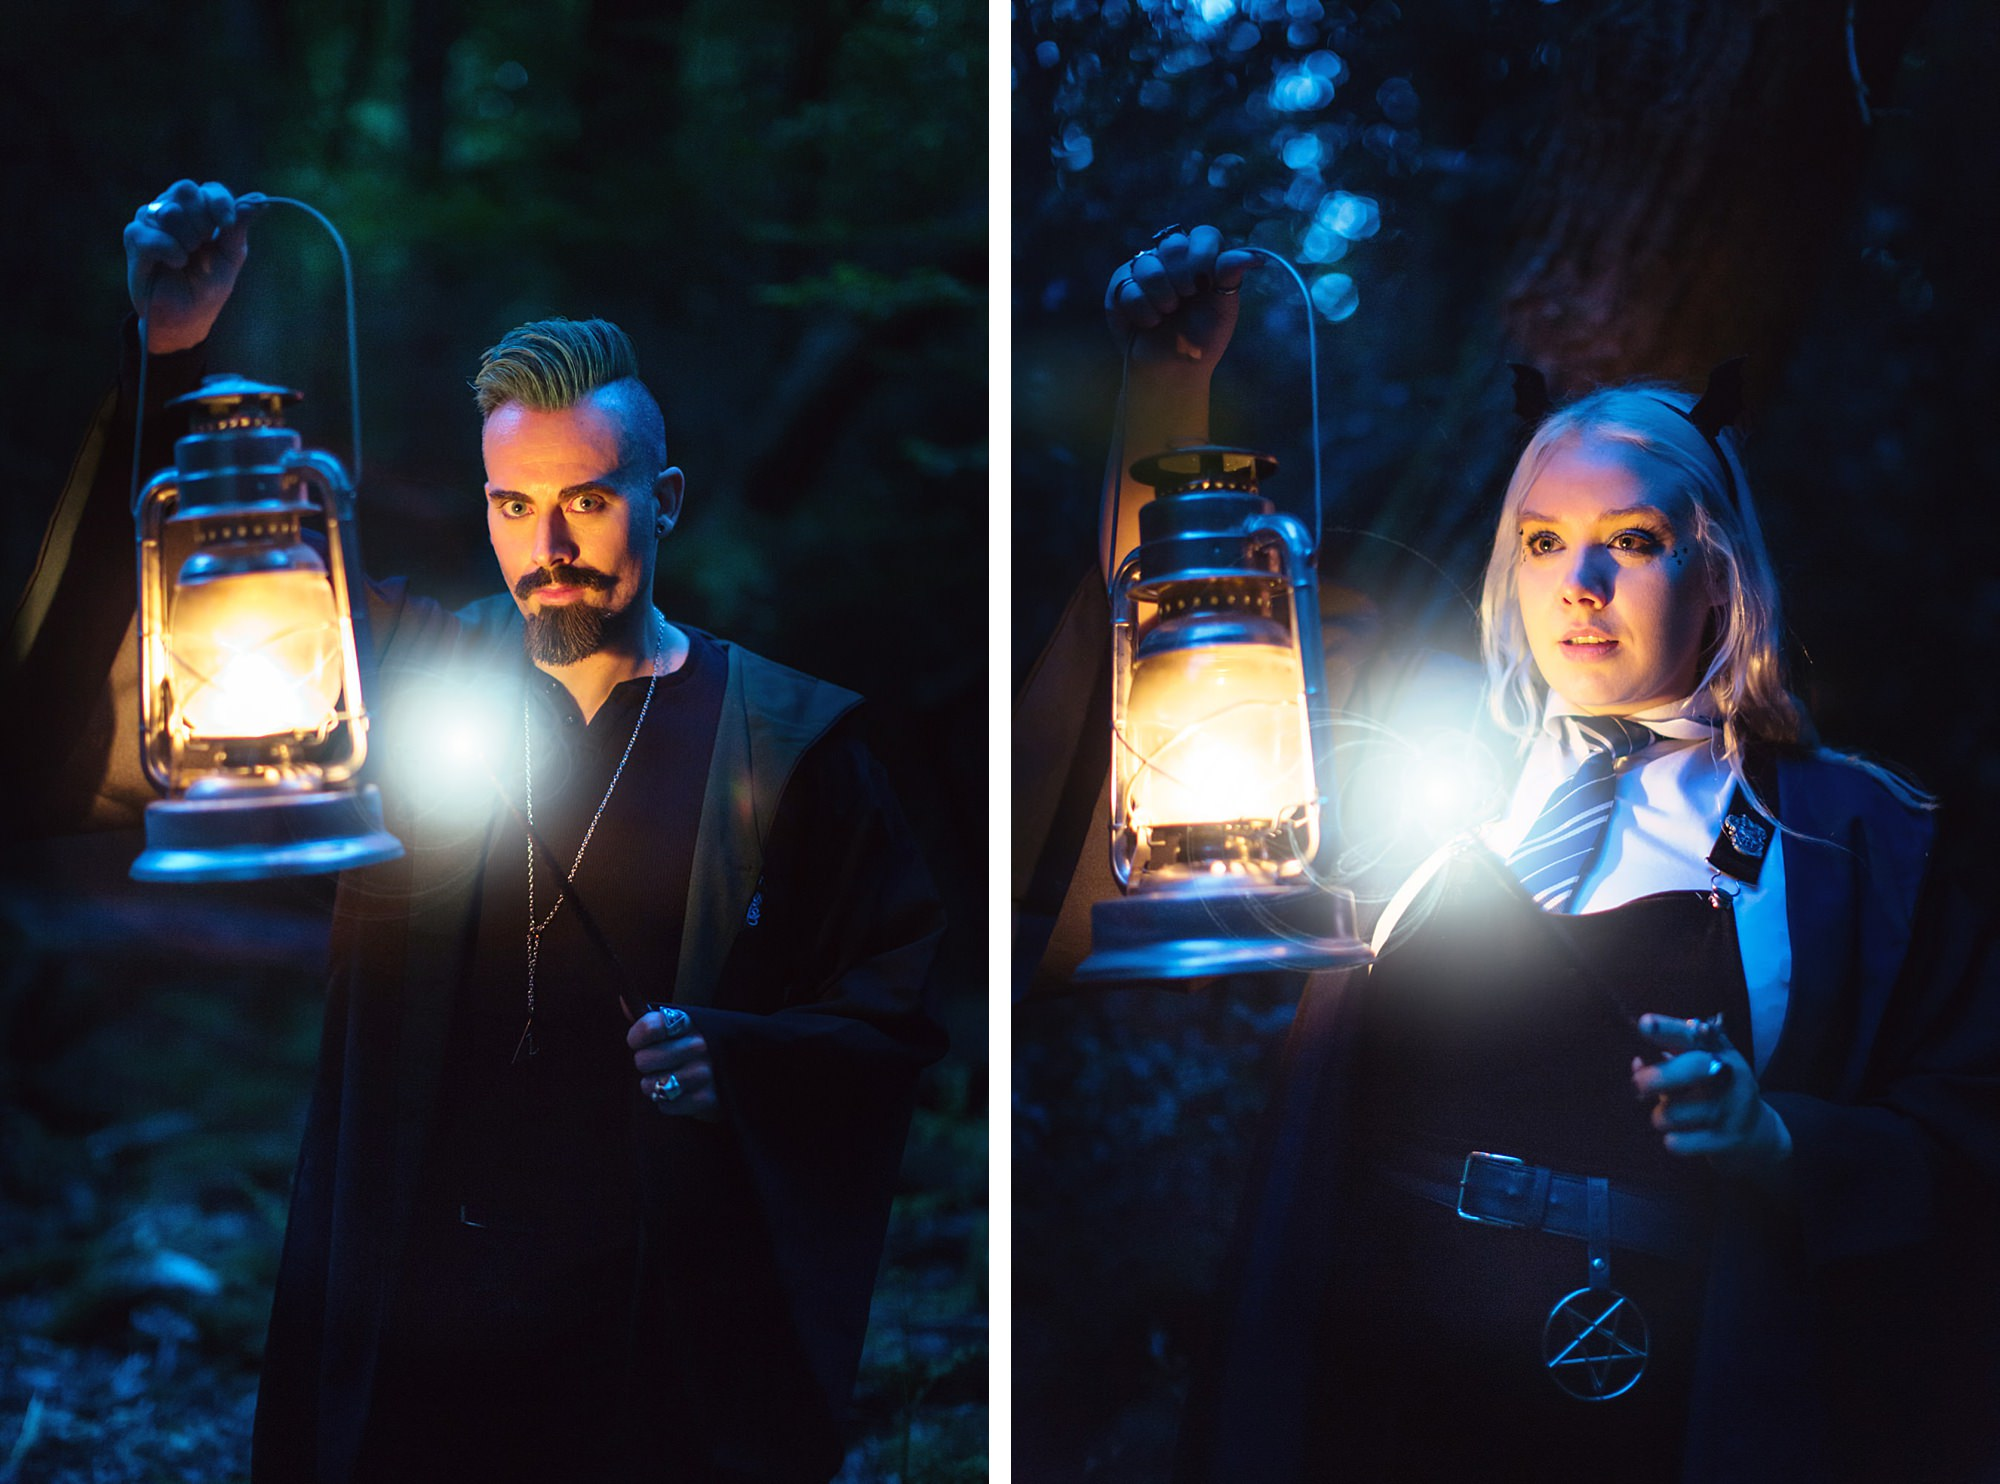 a couple wearing robes and lamps in forbidden forest